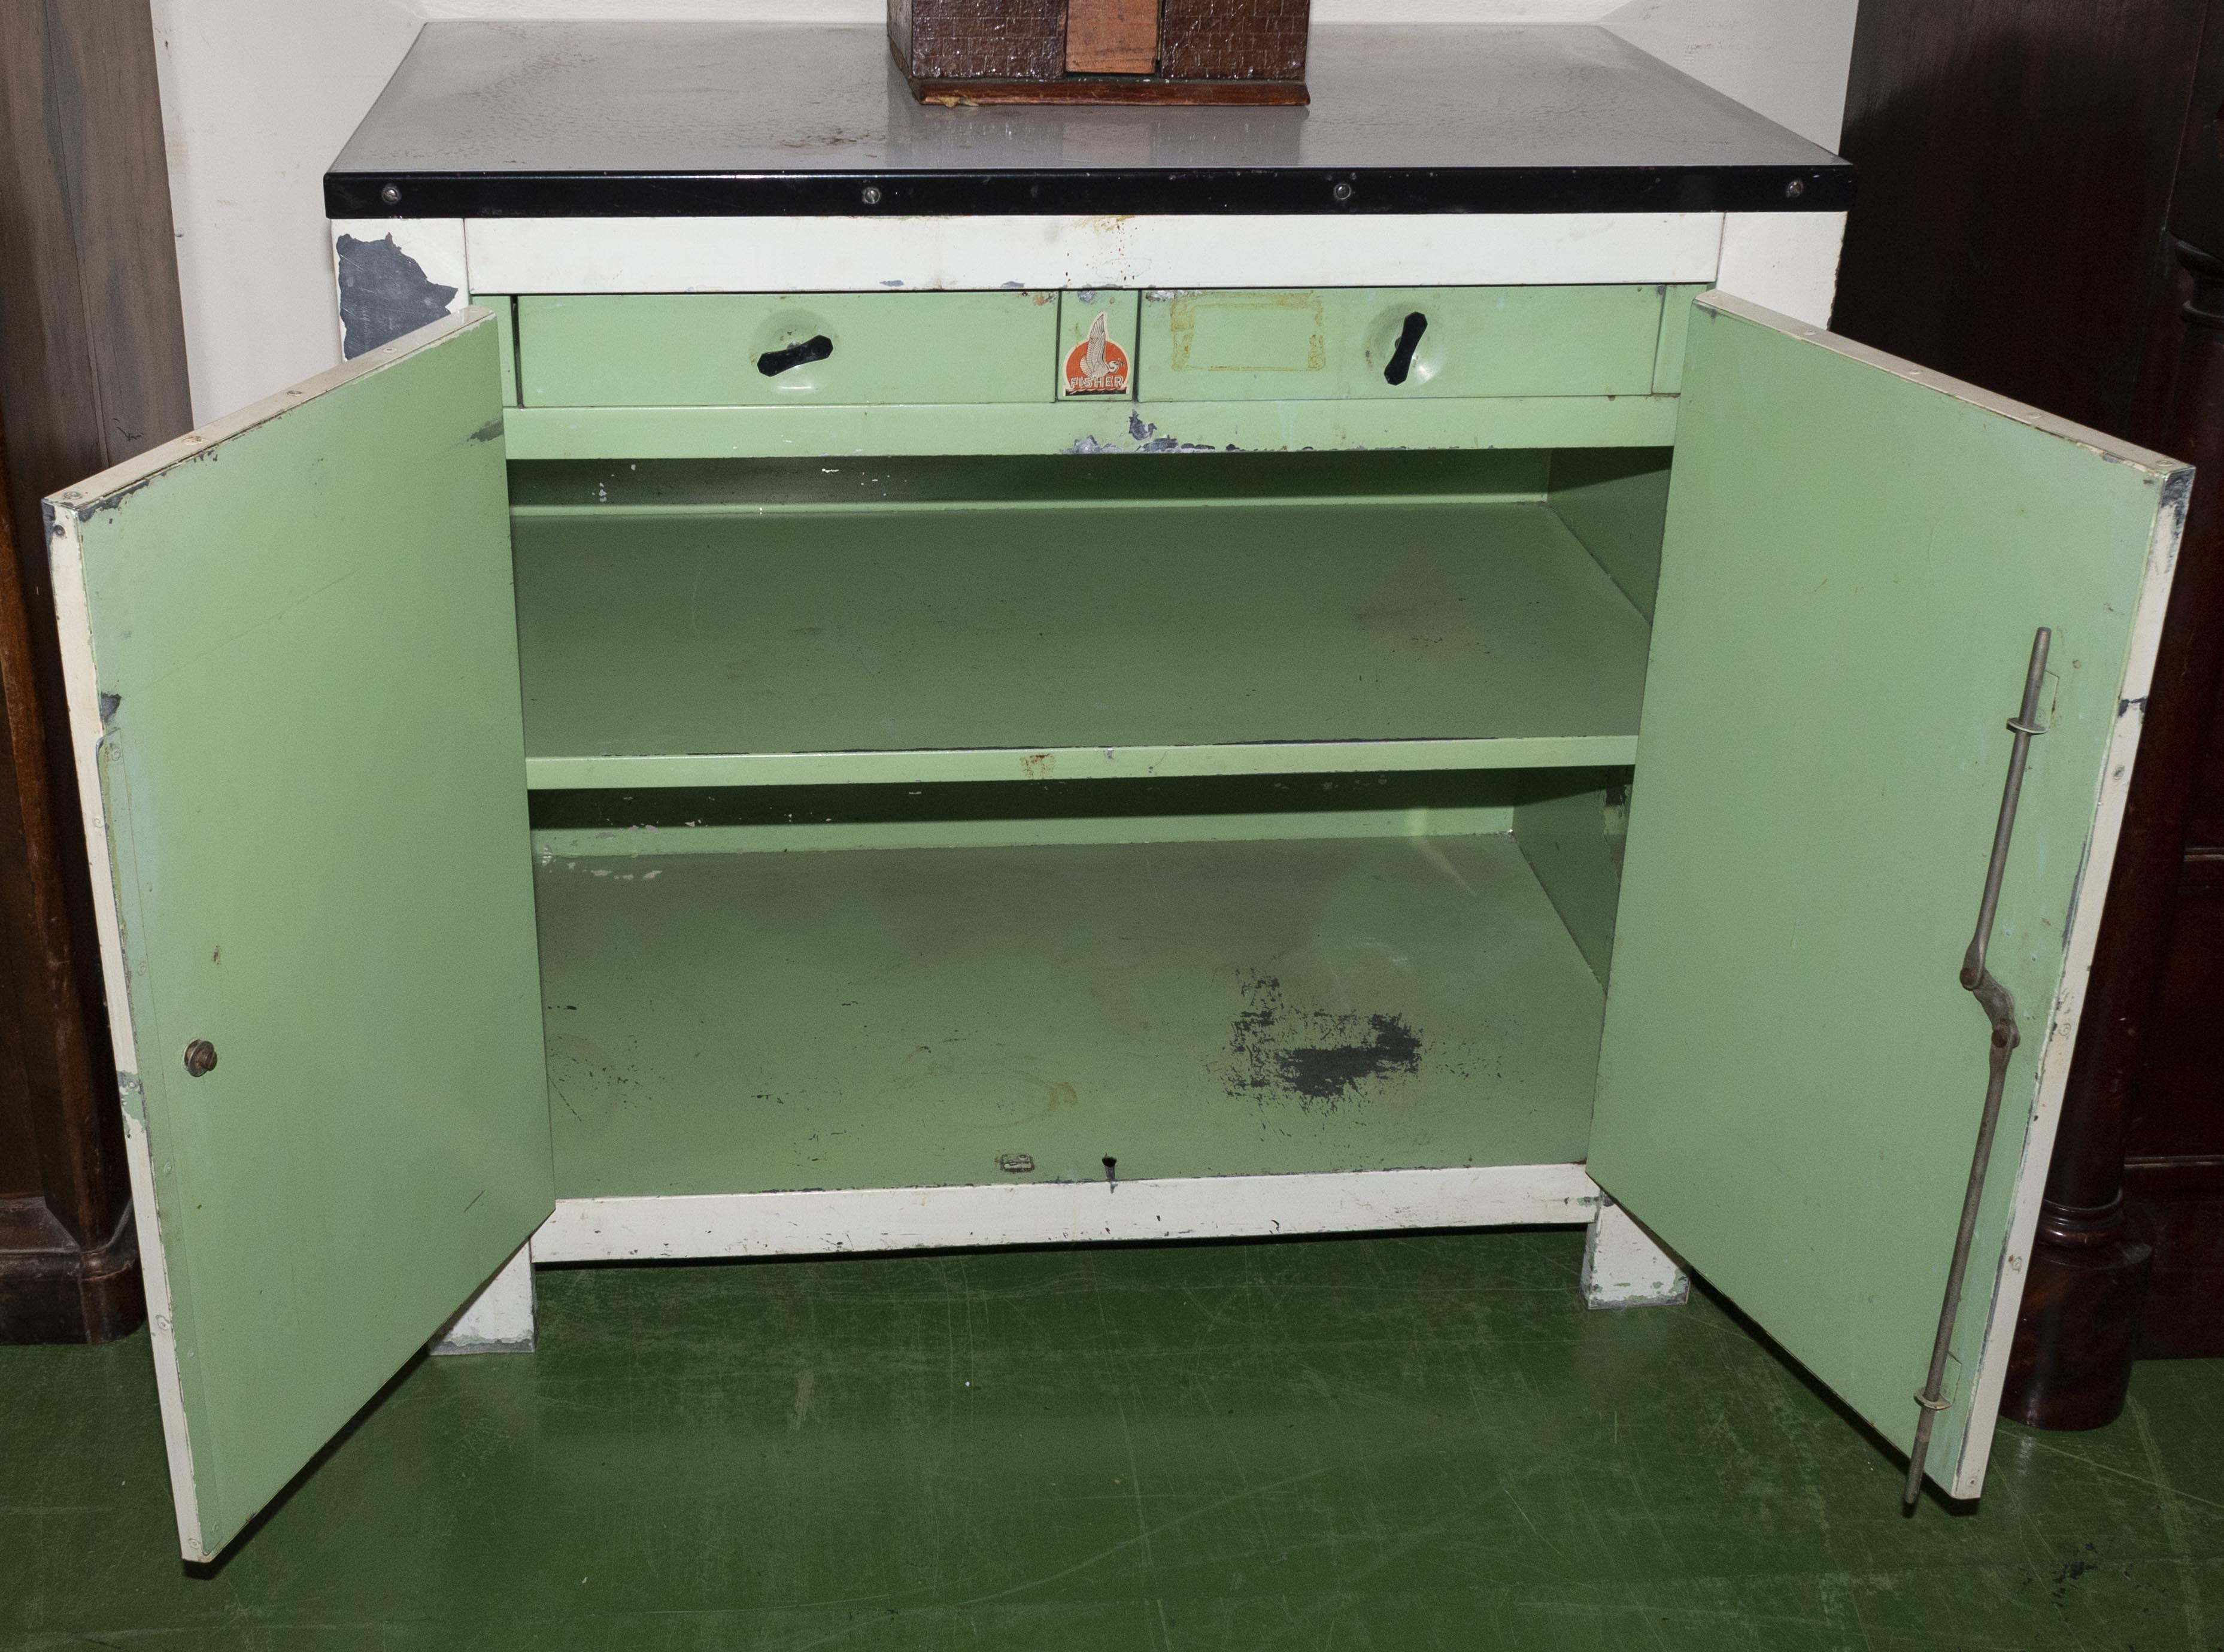 Lot 2 - A metal kitchen storage cabinet made by Fisher, bakelite handles and fitted interior .